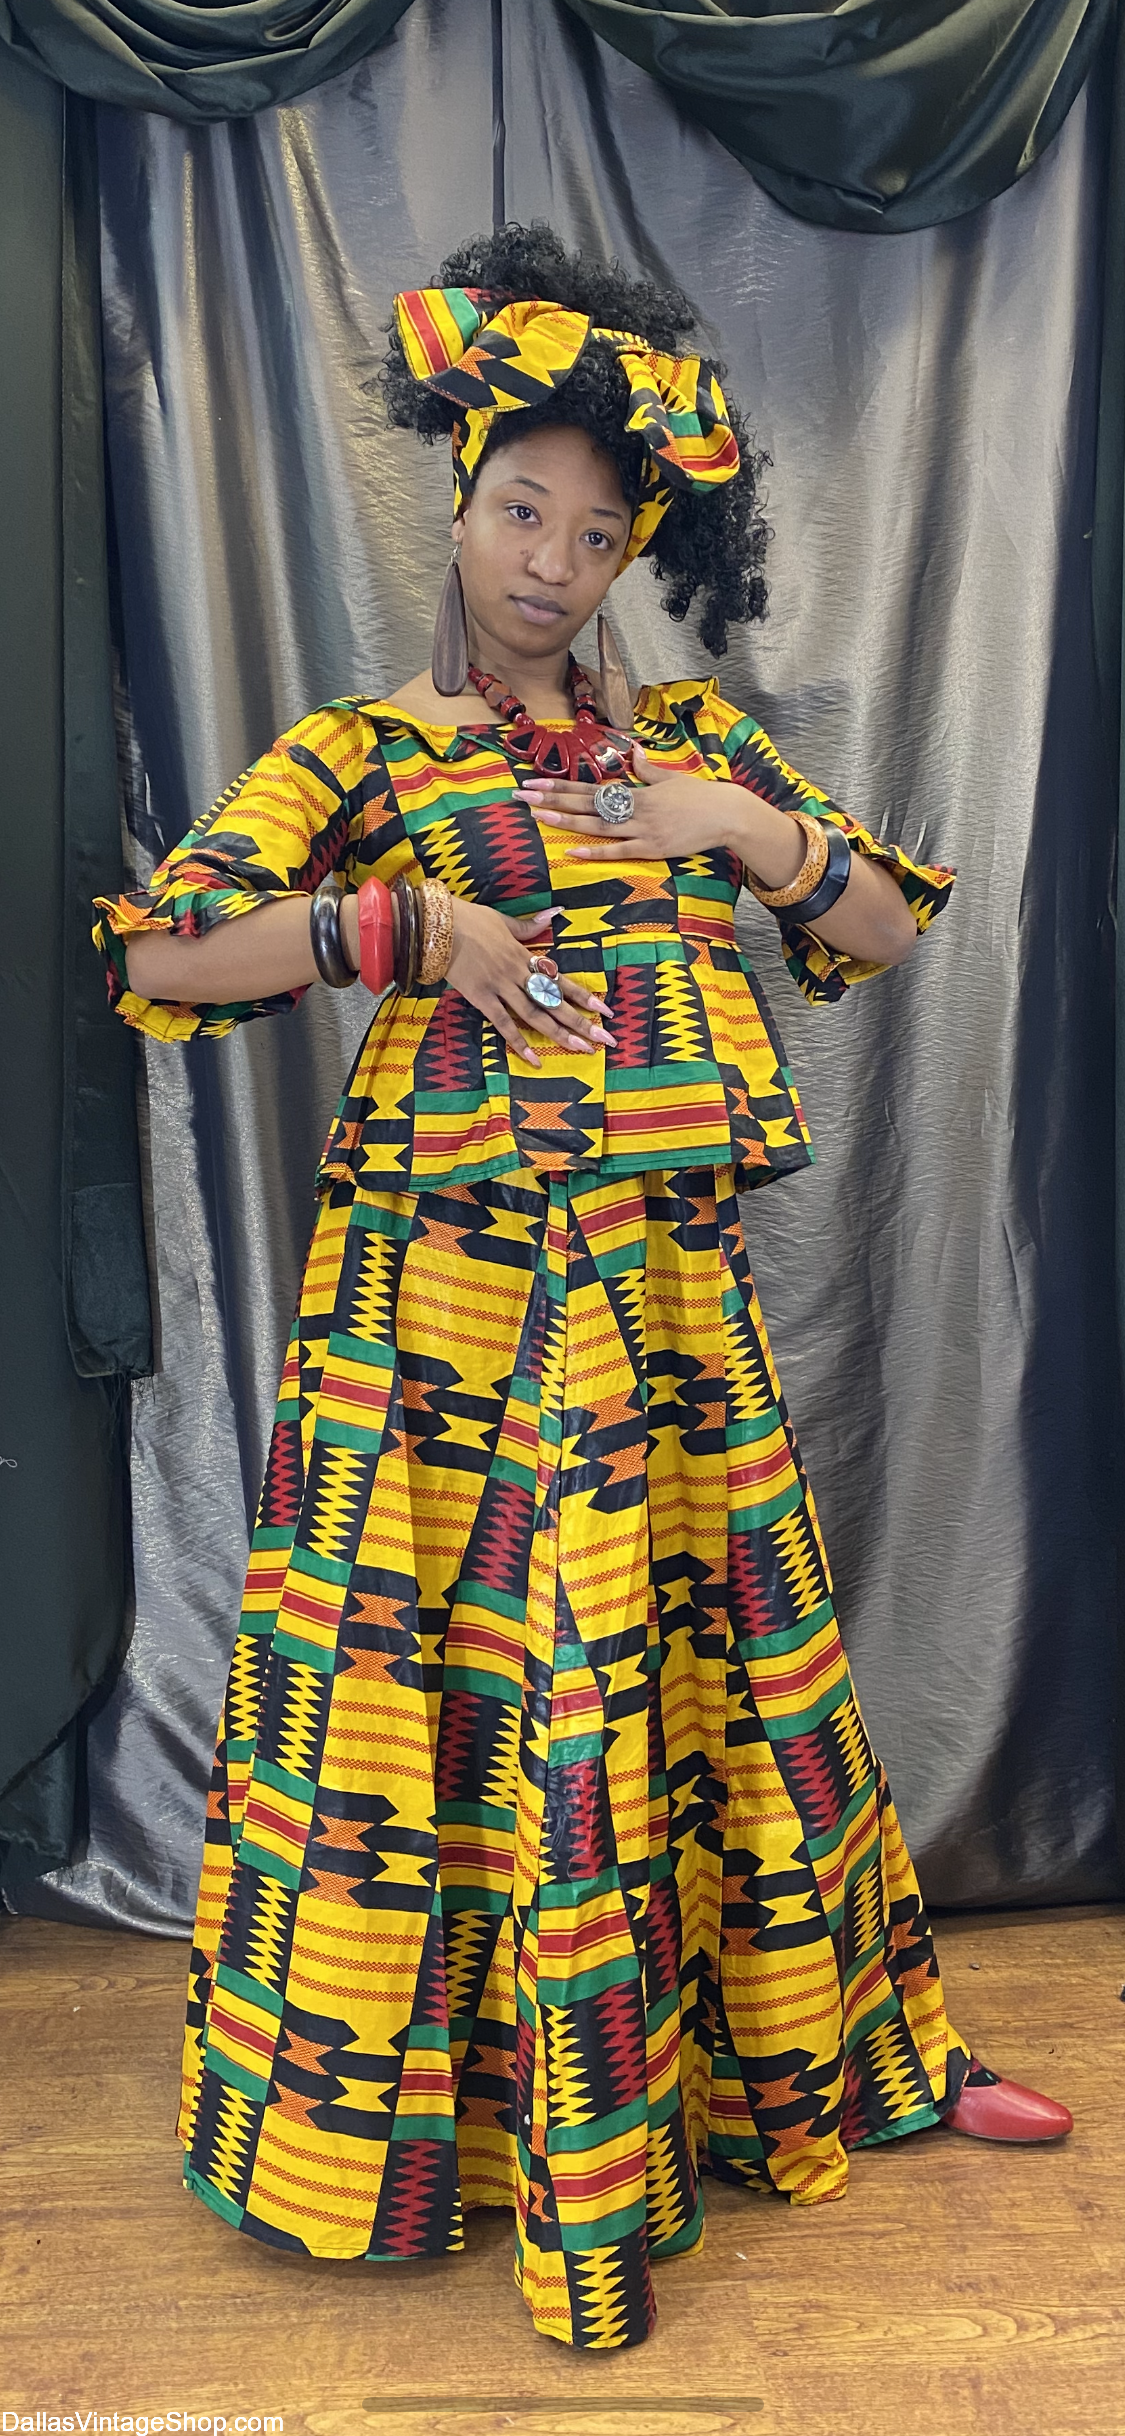 Black History Month Attire, Black Heritage Month Costues, Black History Fashions and African American Month Clothing and accessories are at Dallas Vintage Shop.